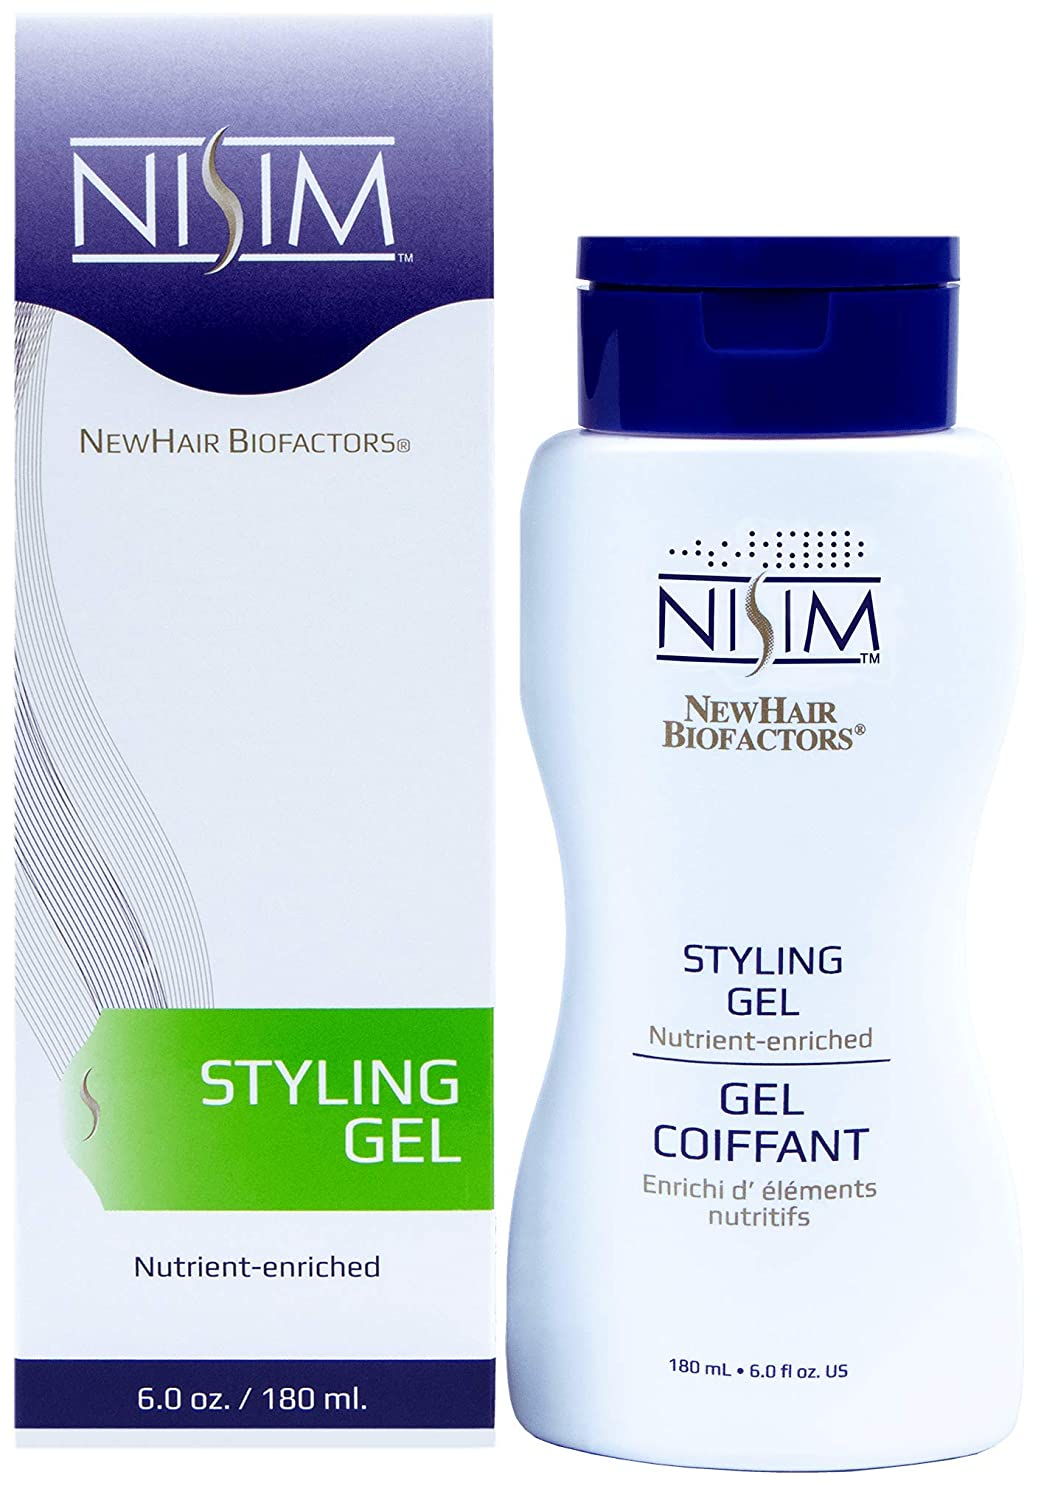 NISIM NewHair BioFactors Styling Gel - Nutrient-rich Clearance SALE Limited quality assurance time